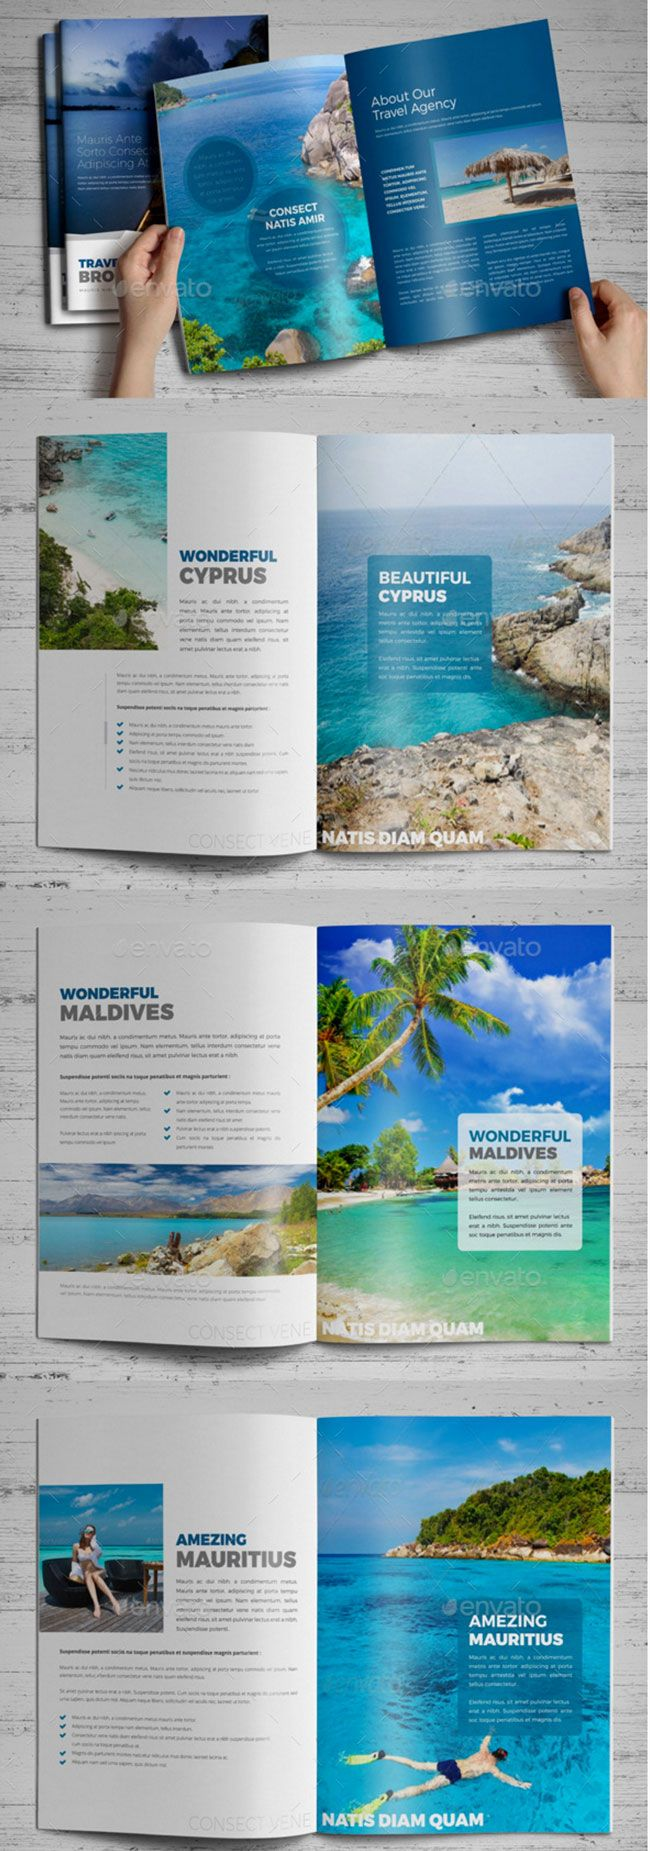 15 mustsee brochure cover pins portfolio design